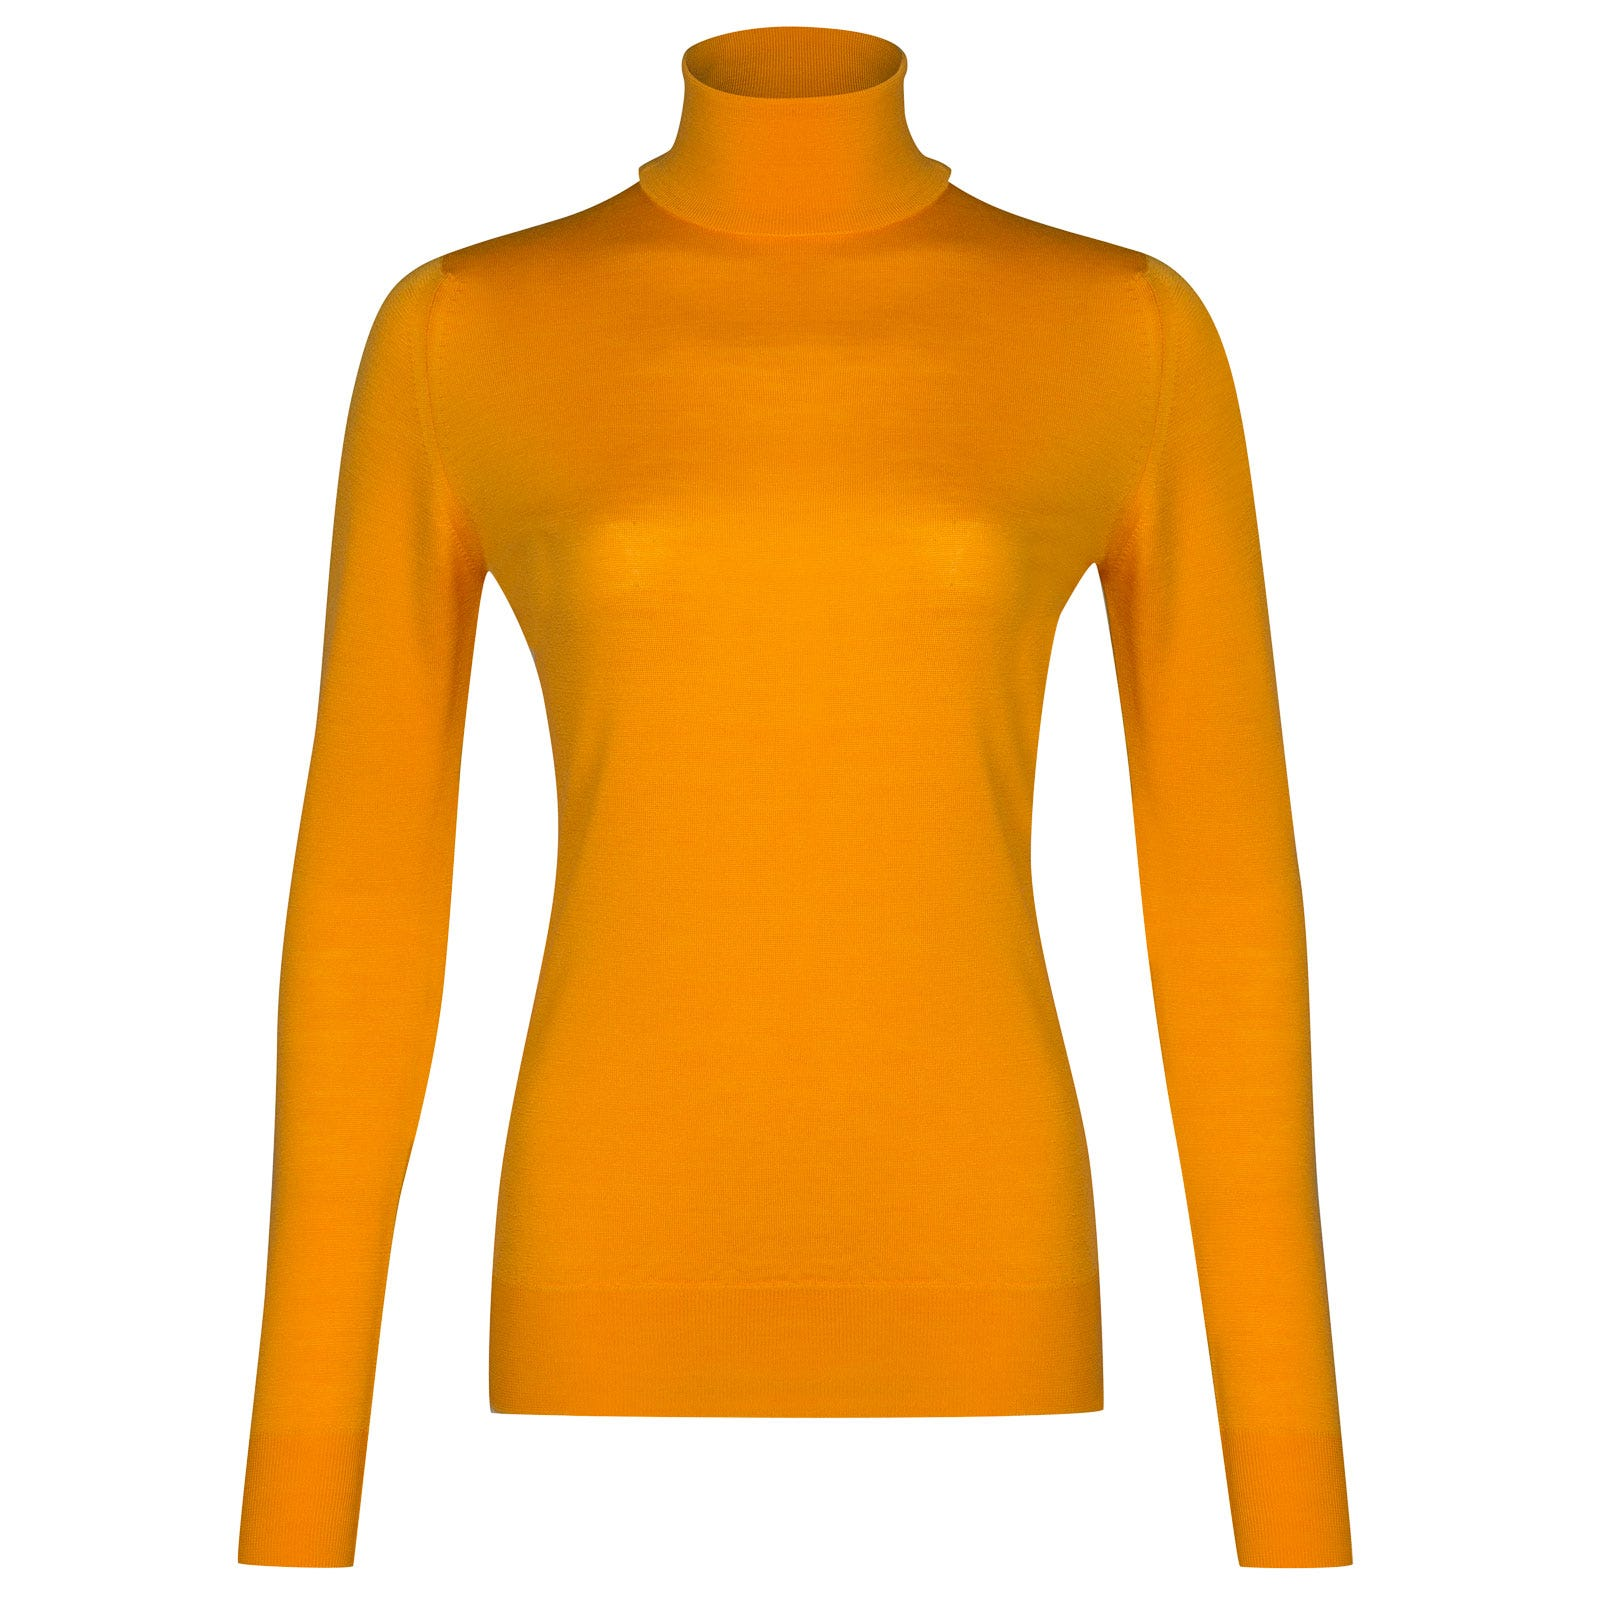 John Smedley Catkin Merino Wool Sweater in Buckthorn Orange-S